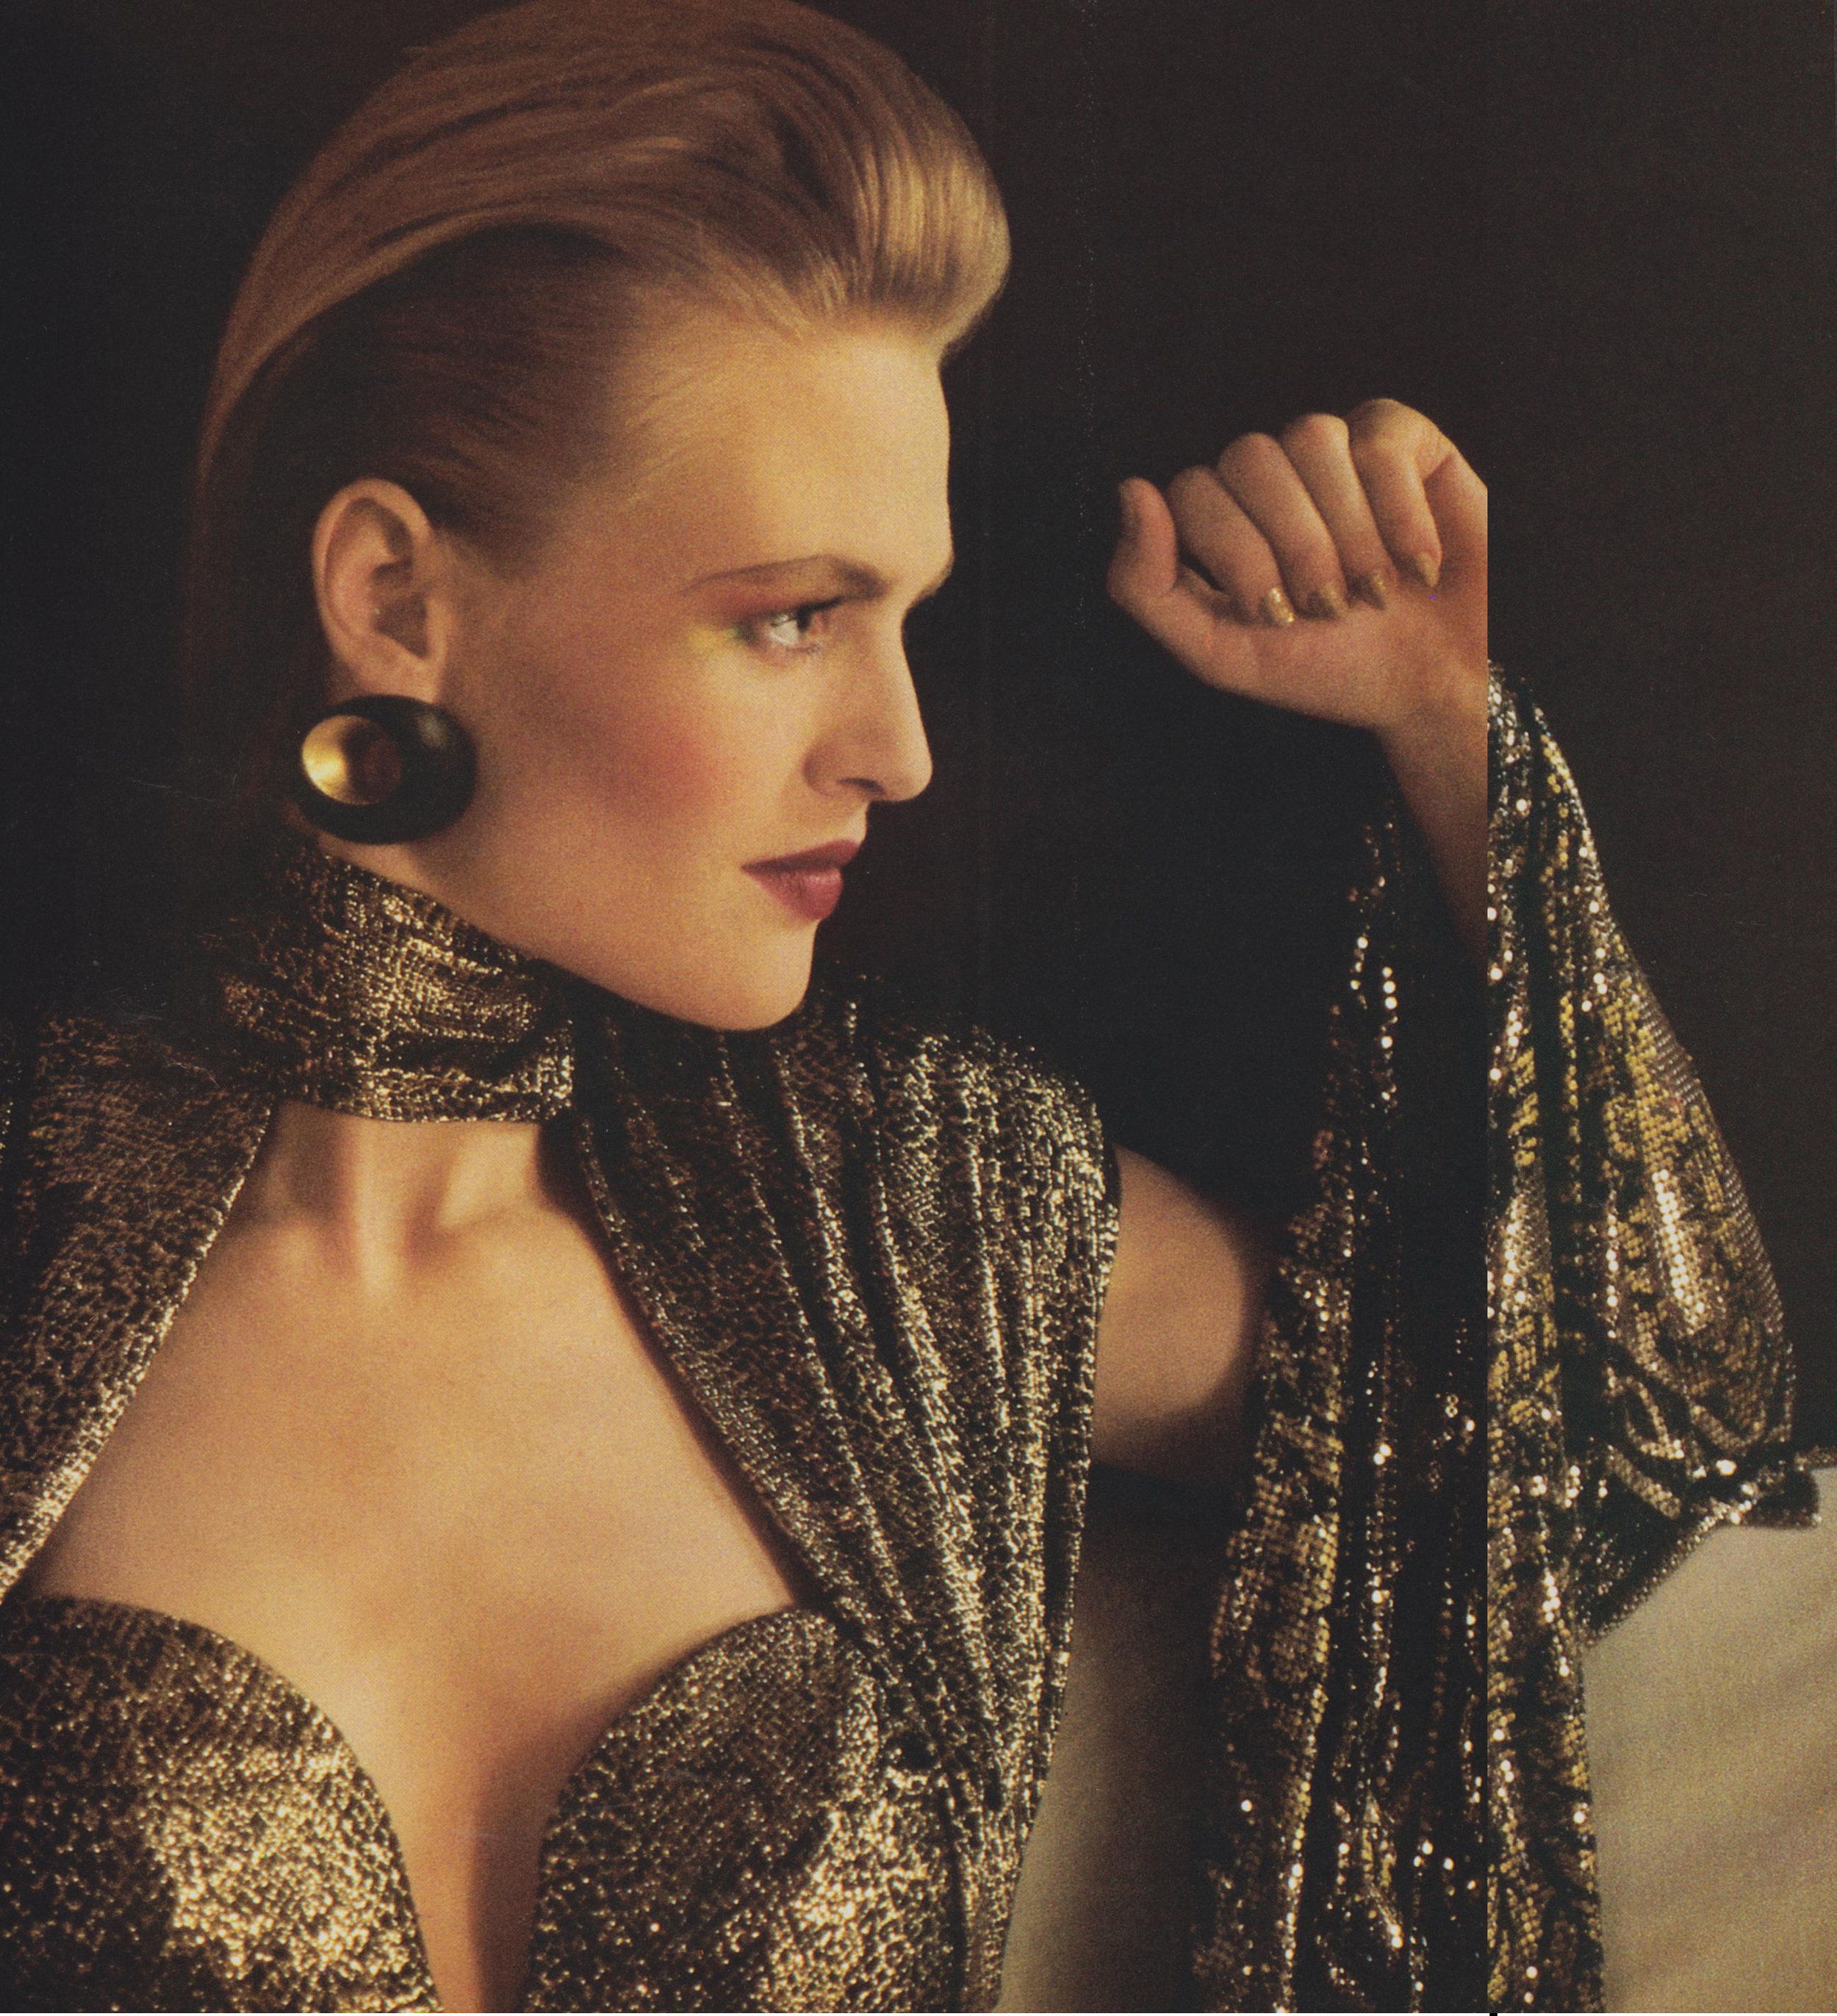 Serpent-print gold lamé photographed by Sheila Metzner for Vogue, September 1985.